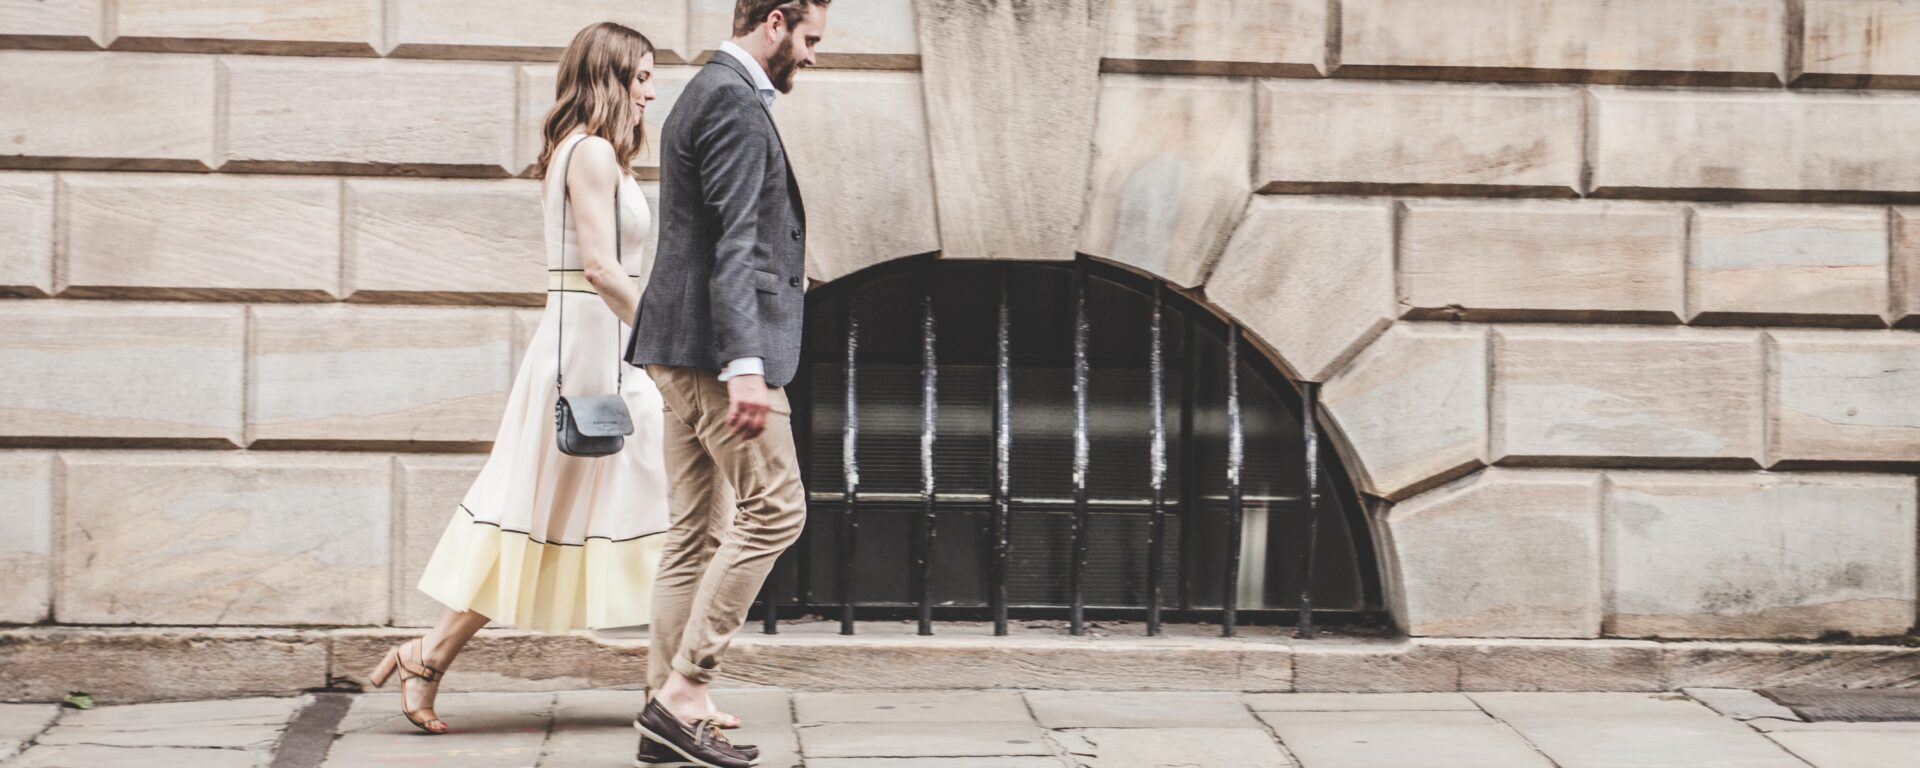 Going From Unrealistic to Realistic Relationship Expectations